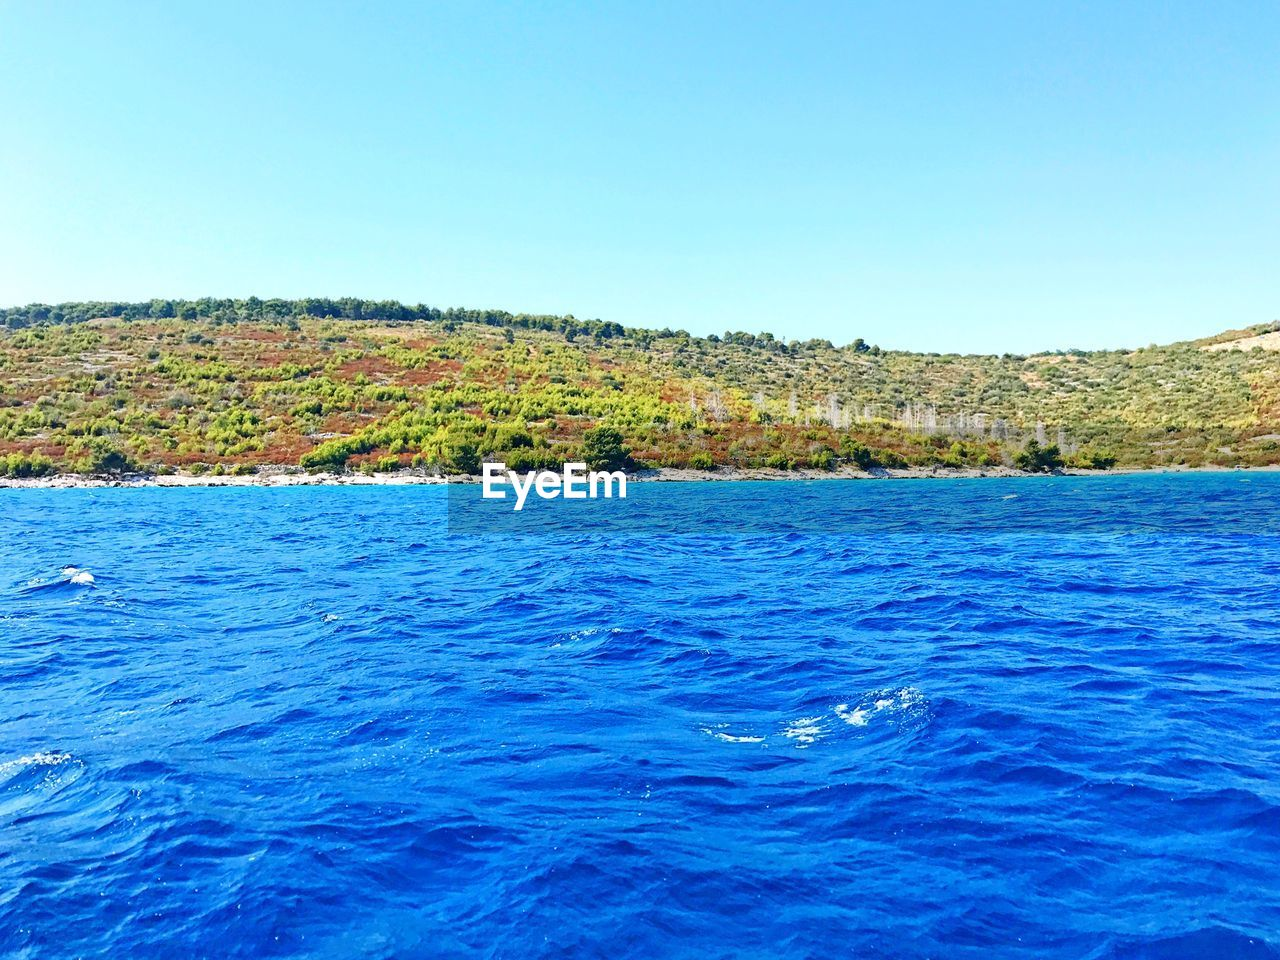 blue, sea, nature, beauty in nature, clear sky, scenics, no people, tranquility, tranquil scene, outdoors, summer, water, holiday, landscape, day, wave, tree, sky